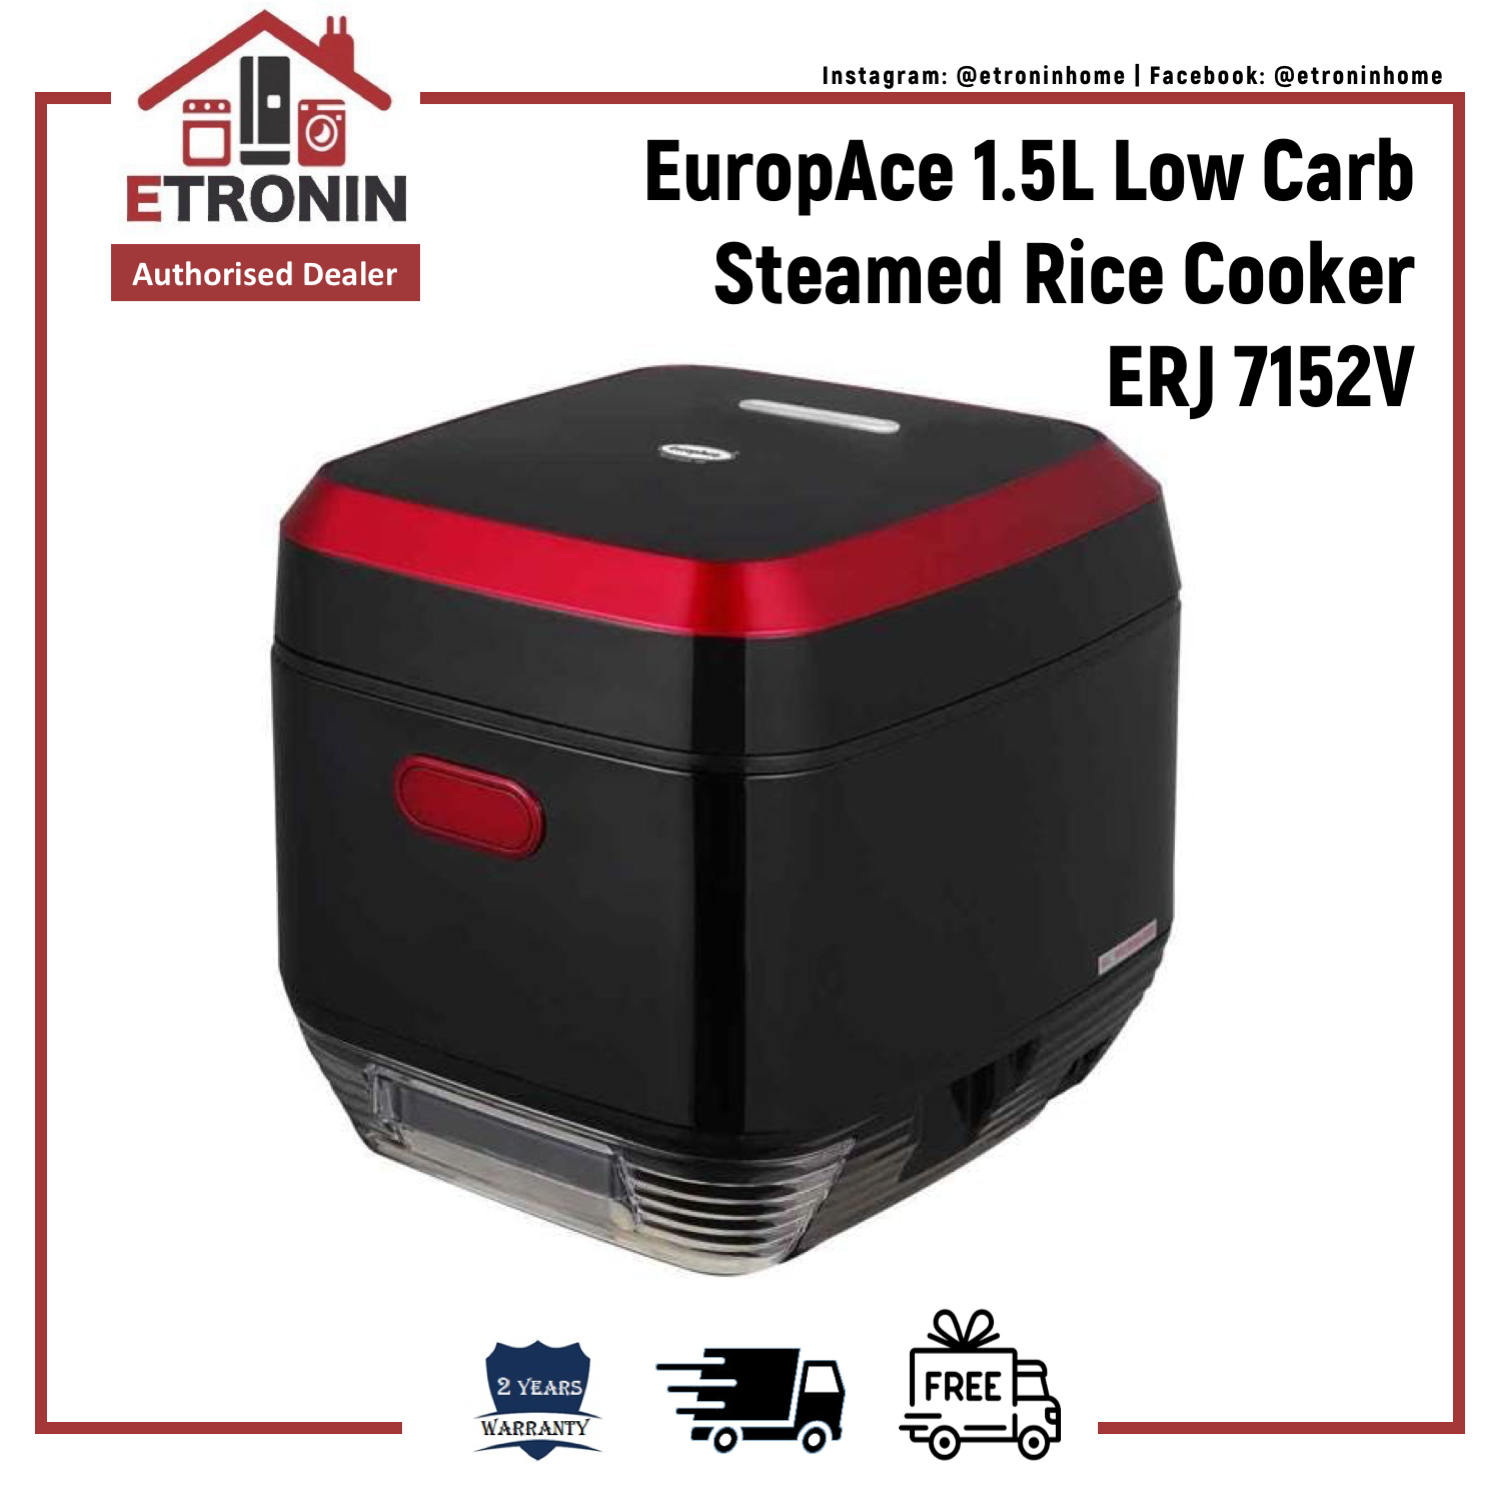 Europace 1.5l Low Carb Steamed Rice Cooker Erj 7152v.